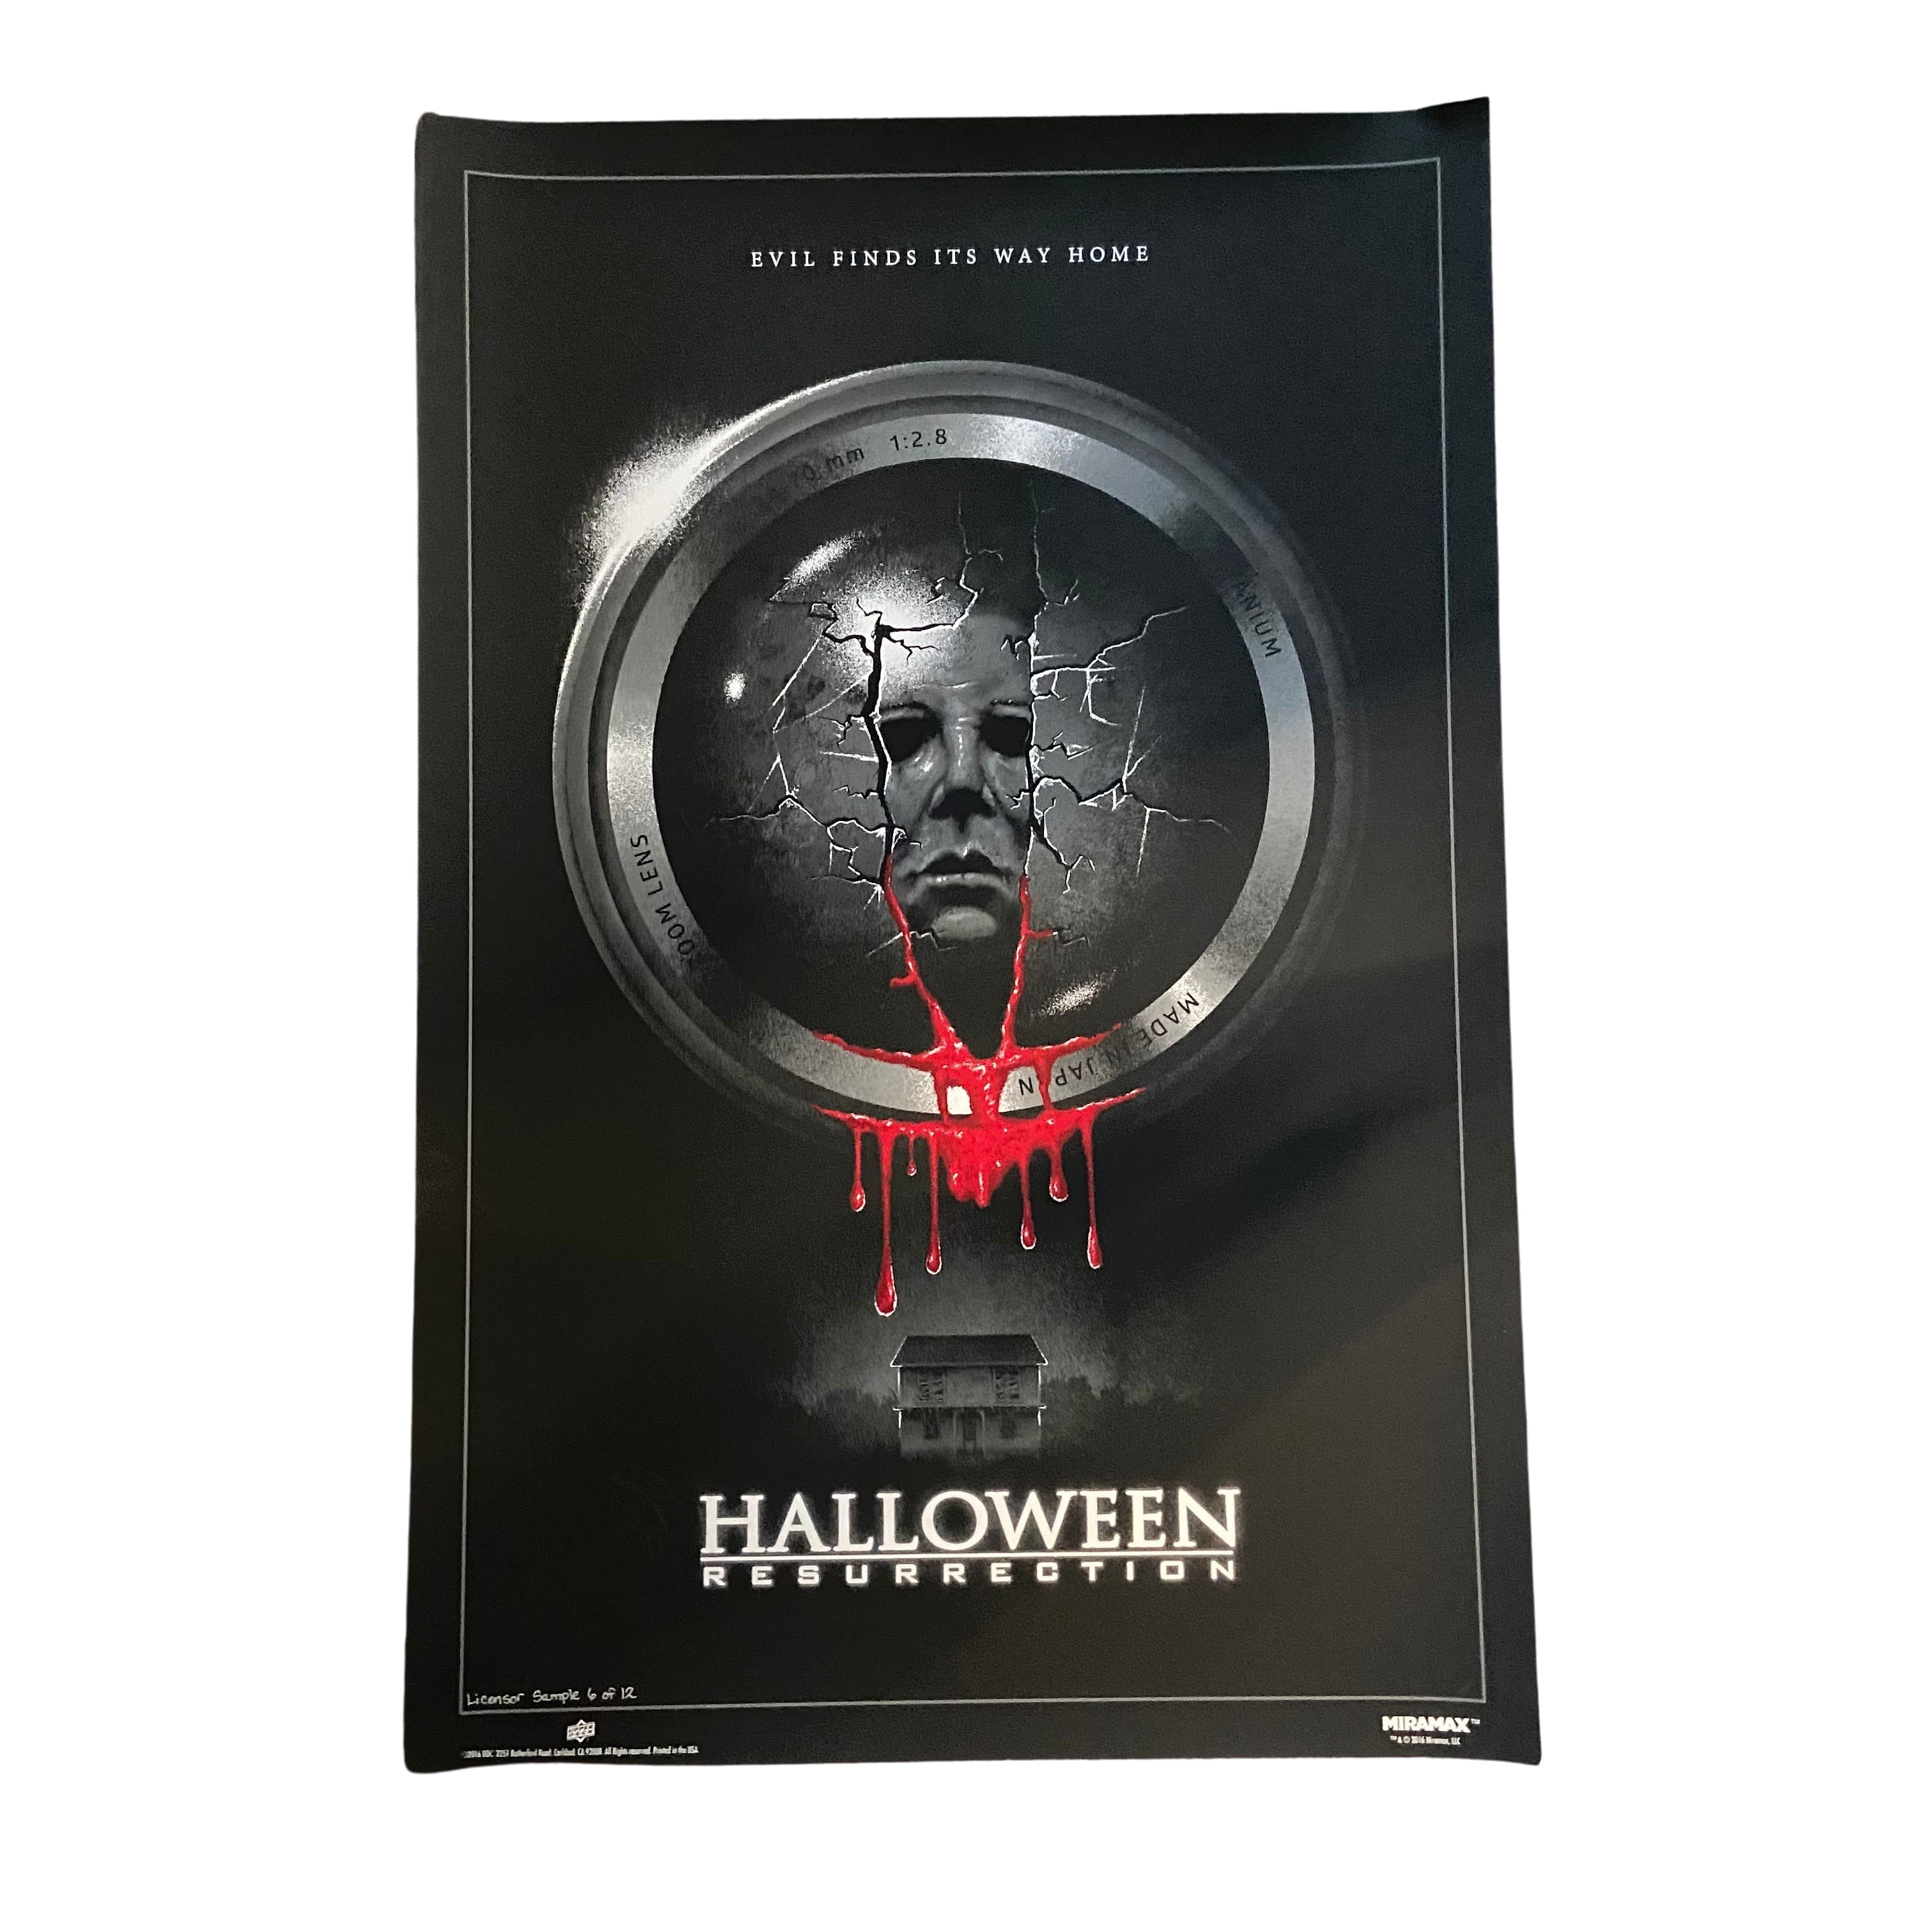 Halloween Resurrection Official 7 Run Limited Edition Movie Posters (B)